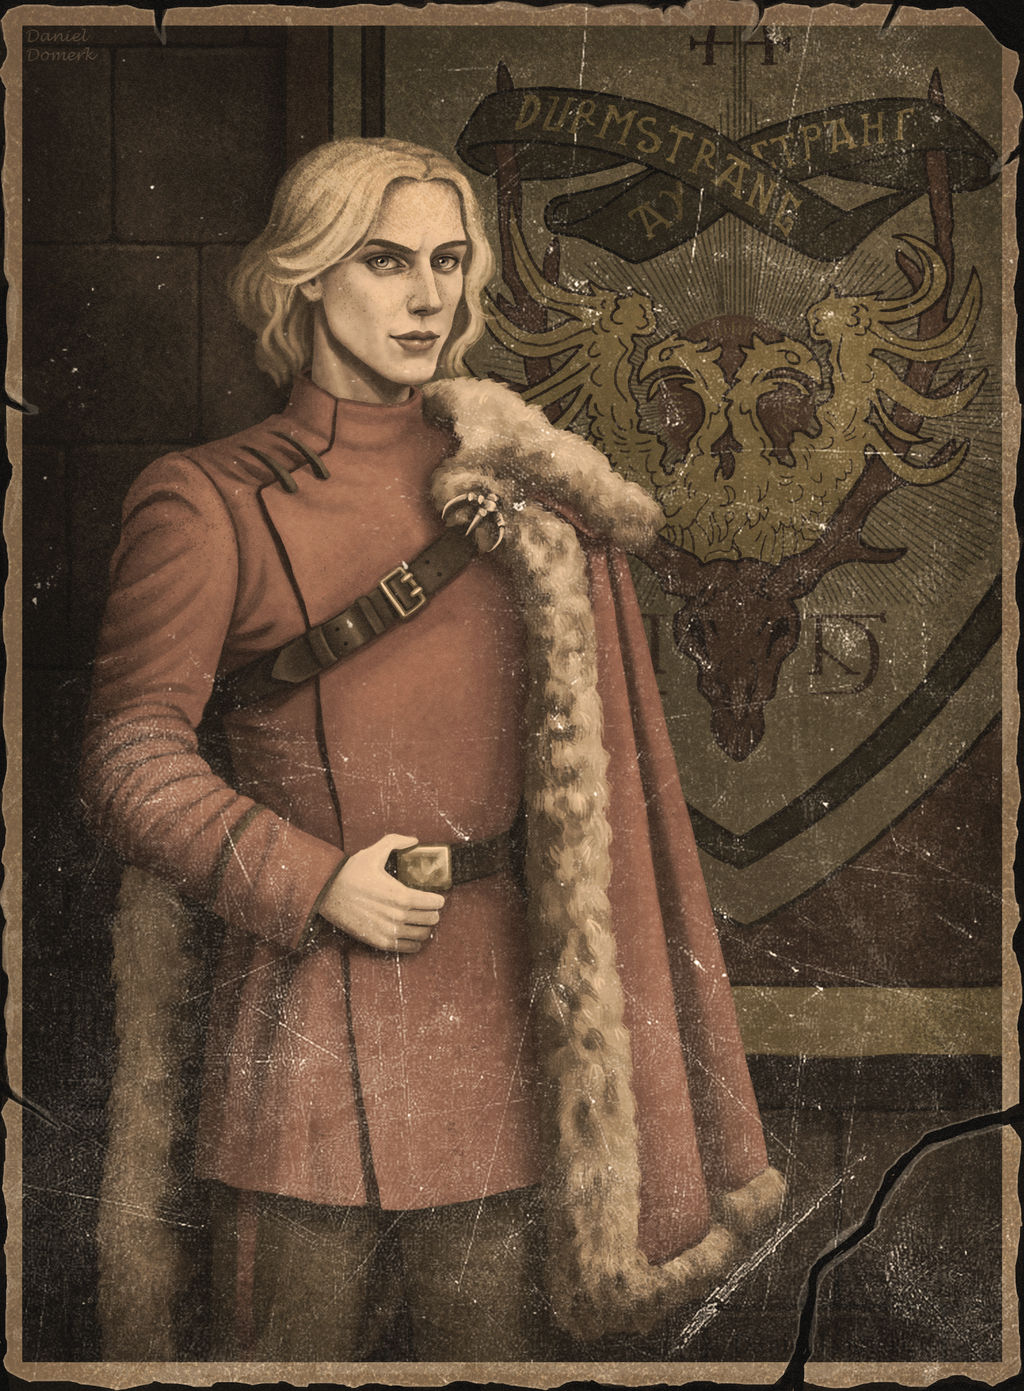 Gellert Grindelwald At Durmstrang Old Photo By Domerk On Deviantart It's where your interests digitally illustrated from a pen sketch; gellert grindelwald at durmstrang old